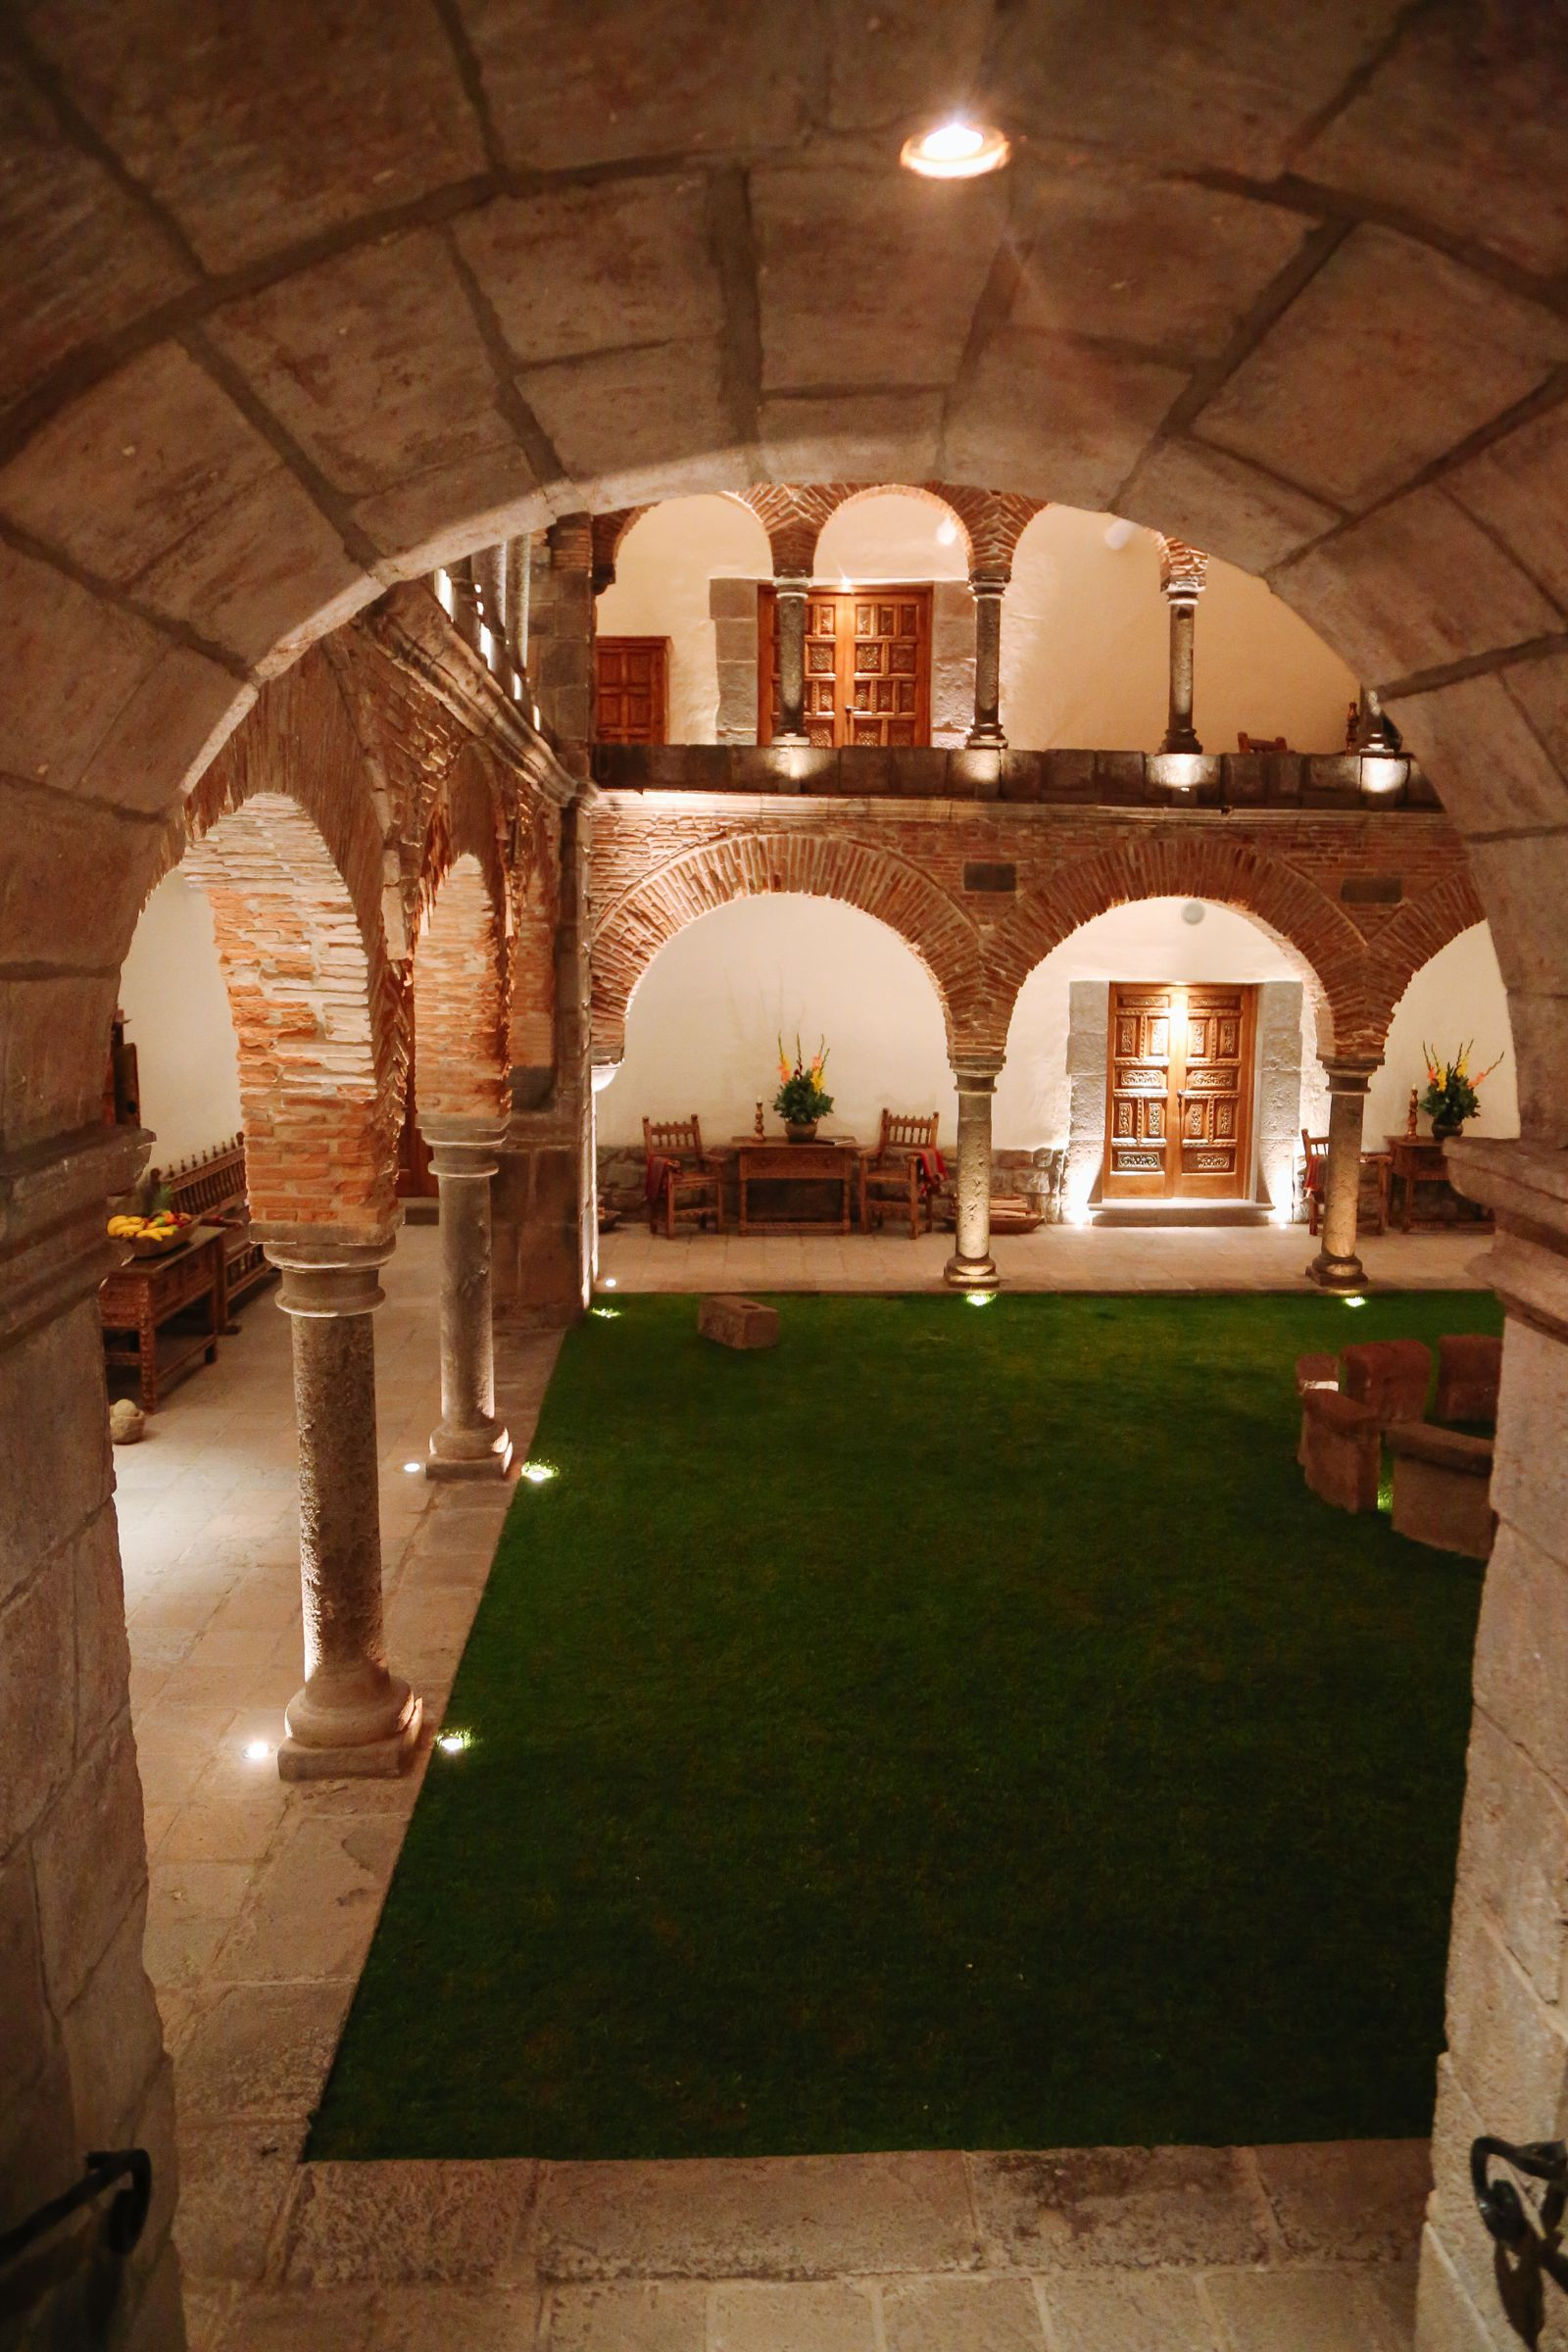 4 Amazing Ancient Inca Sights To See In Cusco And The Sacred Valley of the Incas (11)